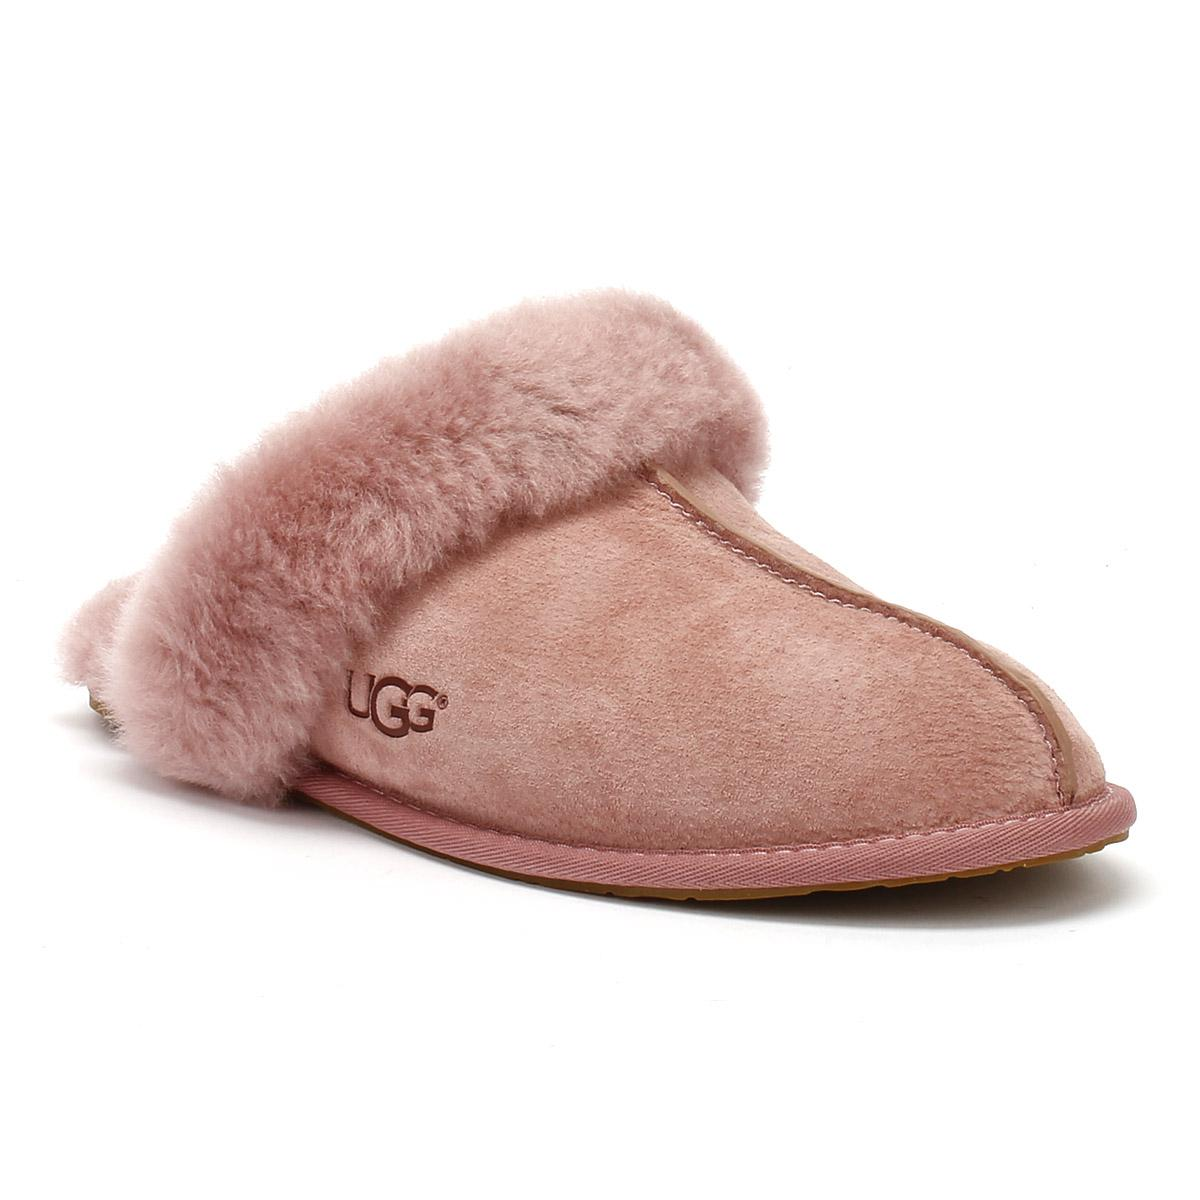 6977d1bb5 Ugg - UGG Scuffette Ii Womens Pink Dawn Slippers - Lyst. View fullscreen